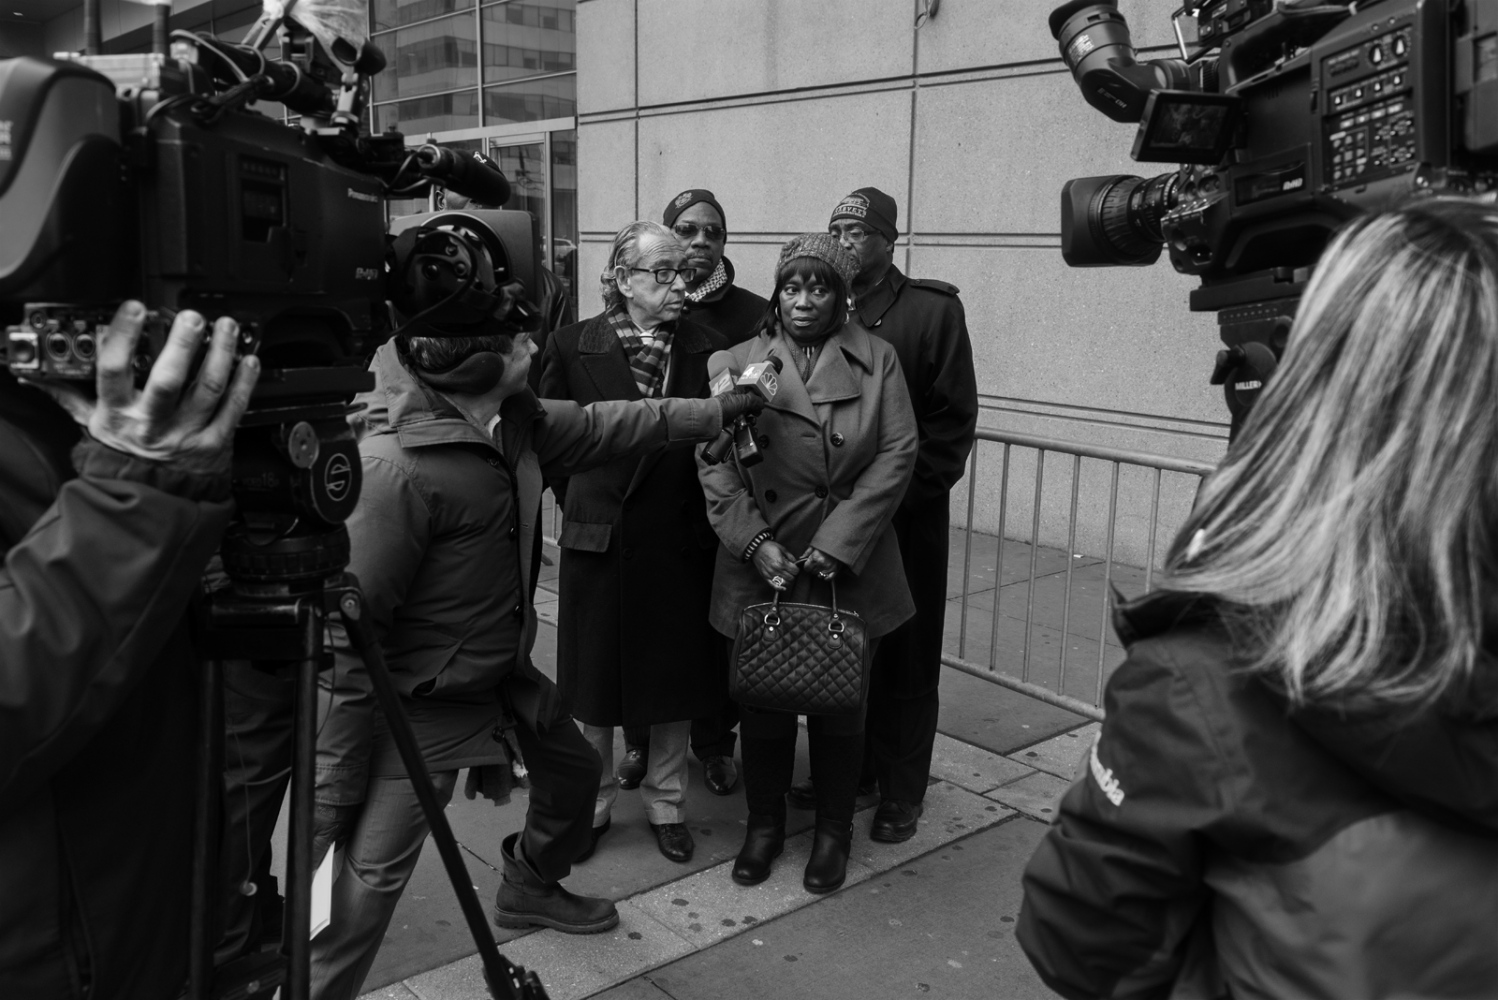 Margaret Burton, the mother of Jahmal Lighfoot, a former member of the Bloods, who was brutally beaten up by Correctional Officers in 2012, is interviewed outside the Bronx Criminal Court on February 17. Her son suffered several injuries and had his nose and eyes sockets broken after the security chief at the time, Eliseo Perez, ordered correctional officers to assault him. He and five other CO's were convicted on June 6th of the same year. February 17th, 2016